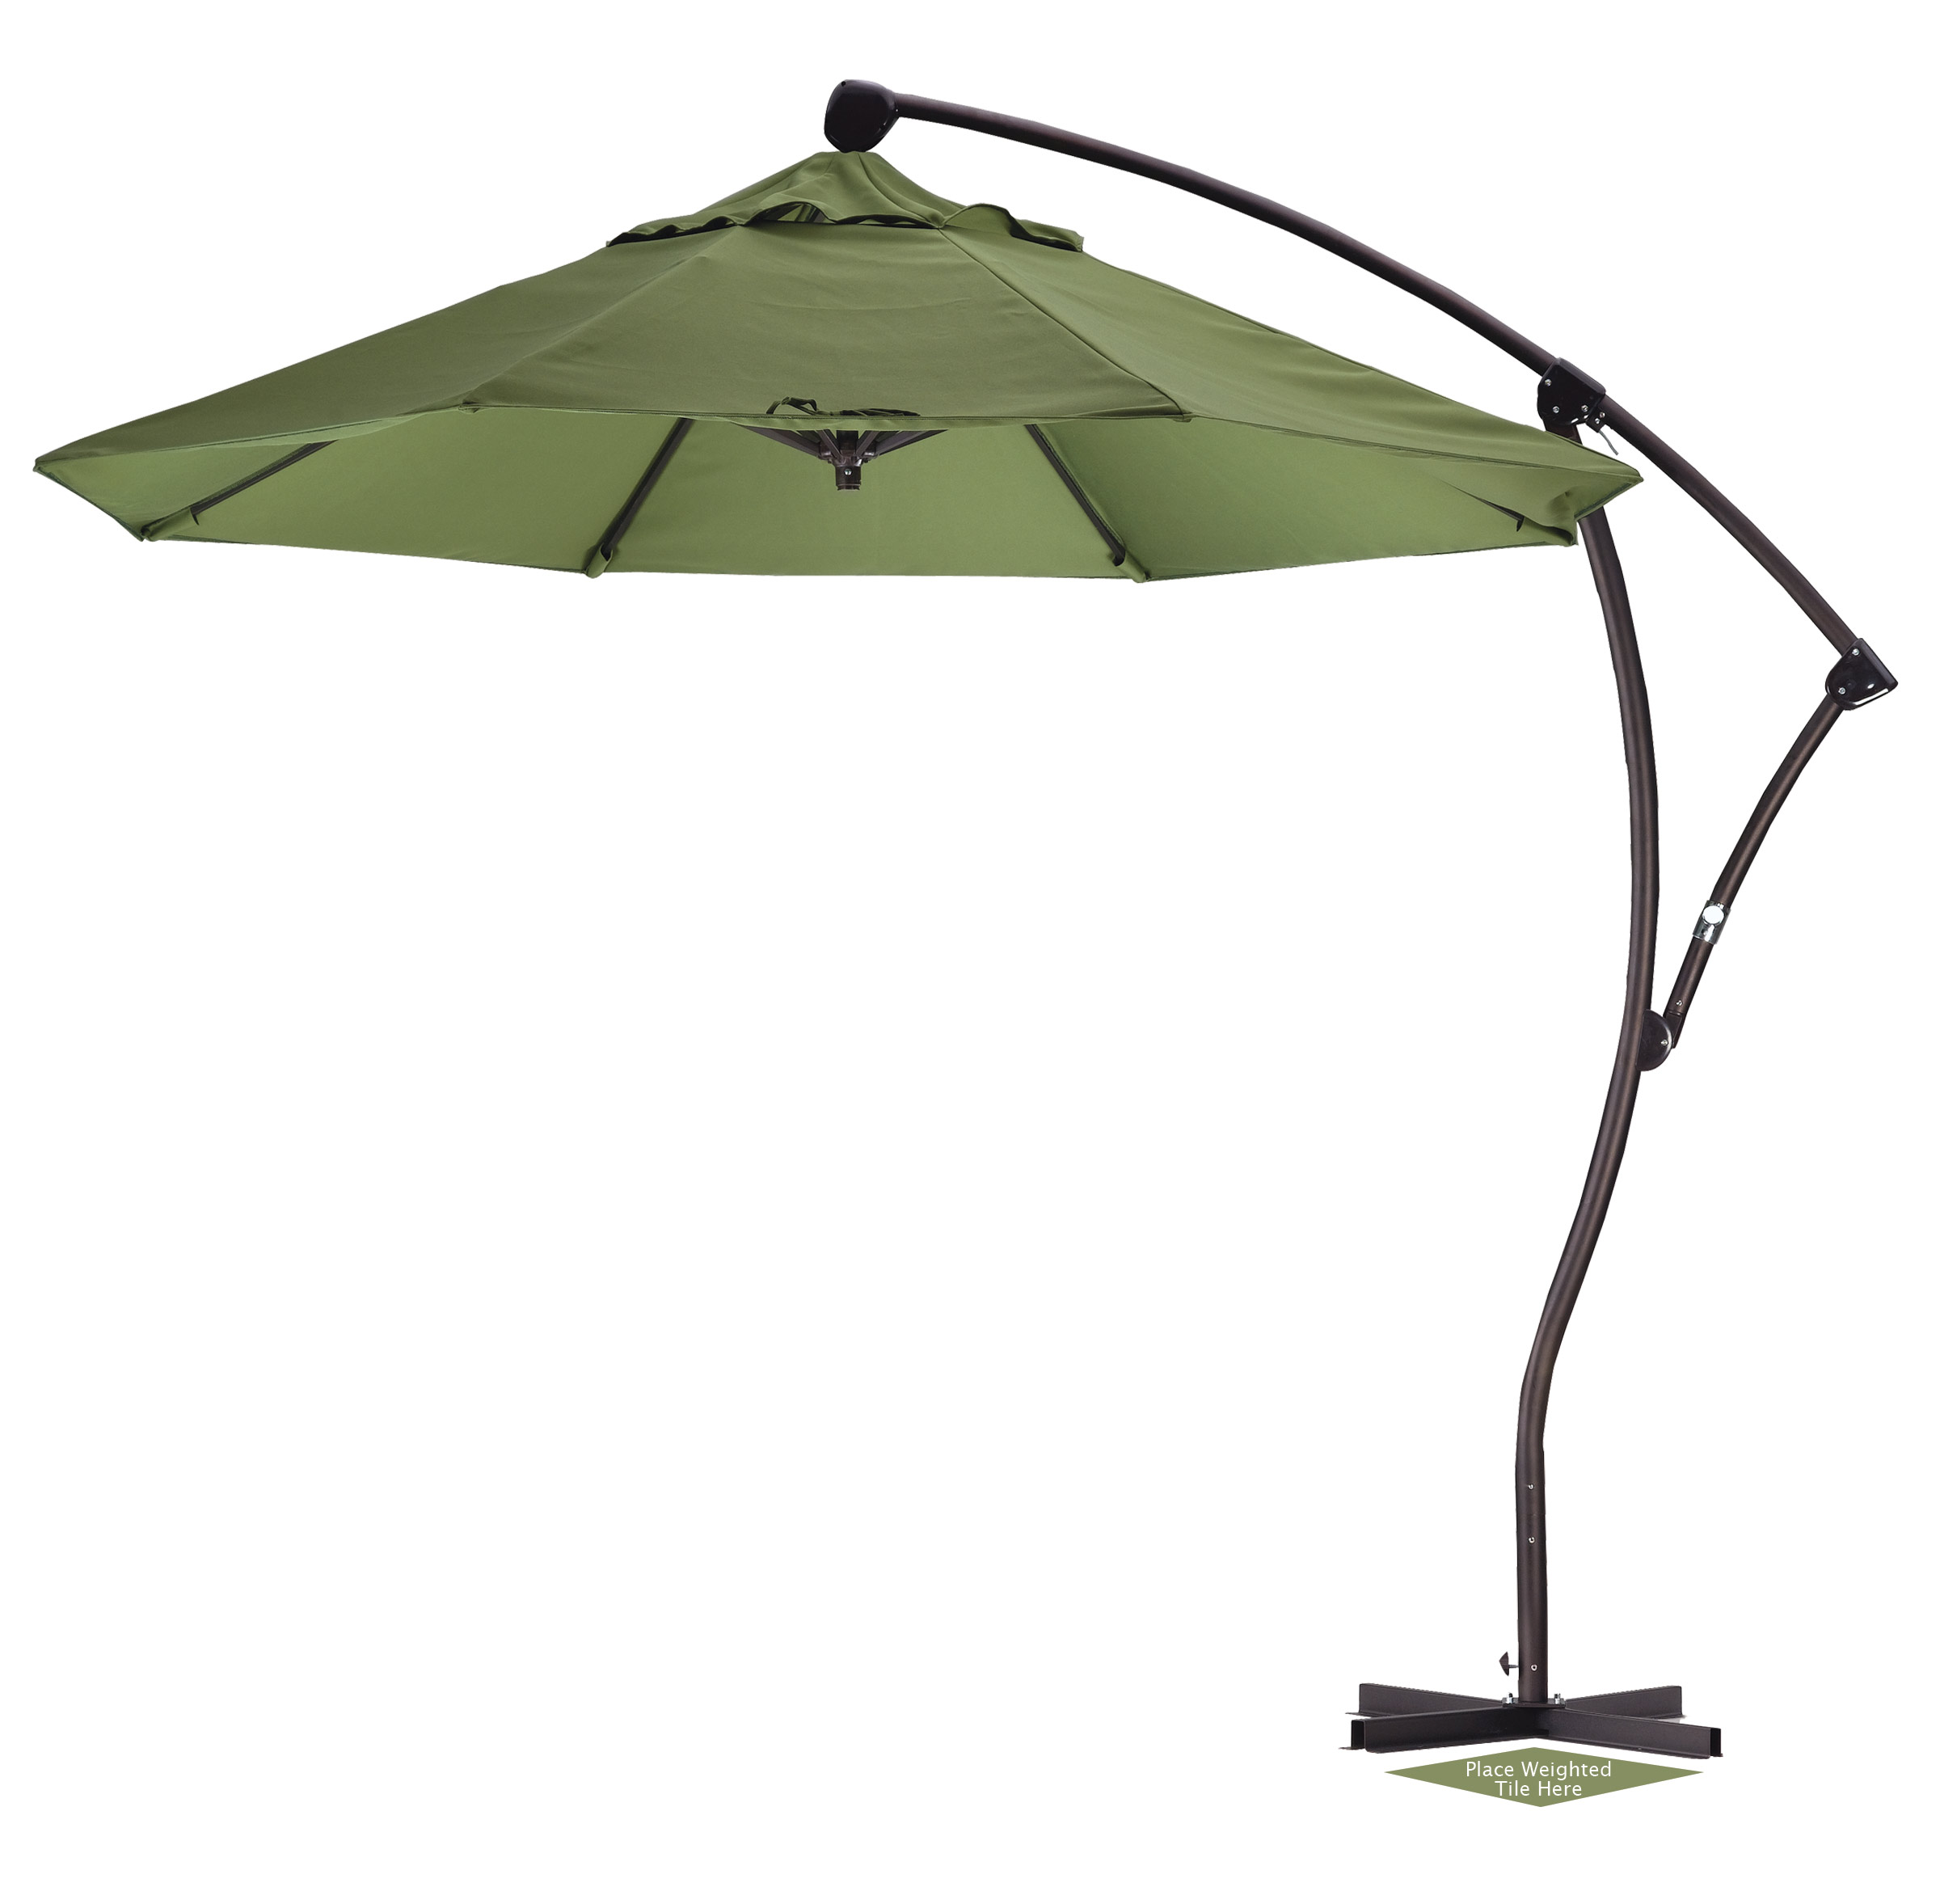 fset umbrella at bargain price – Great color selection